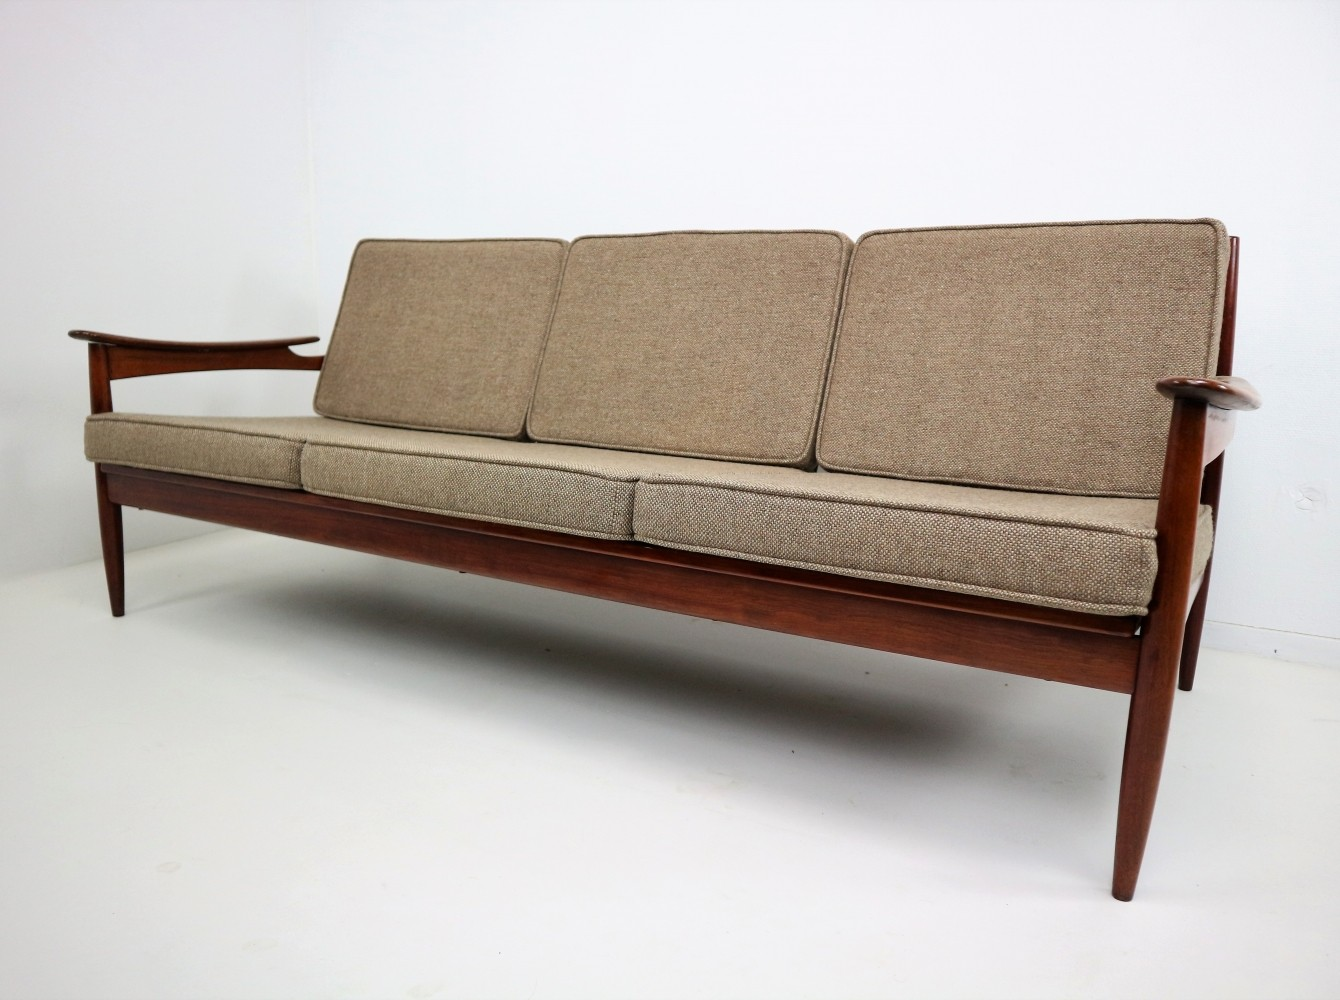 danish rosewood mid century sofa by unknown designer for lifa 65366. Black Bedroom Furniture Sets. Home Design Ideas